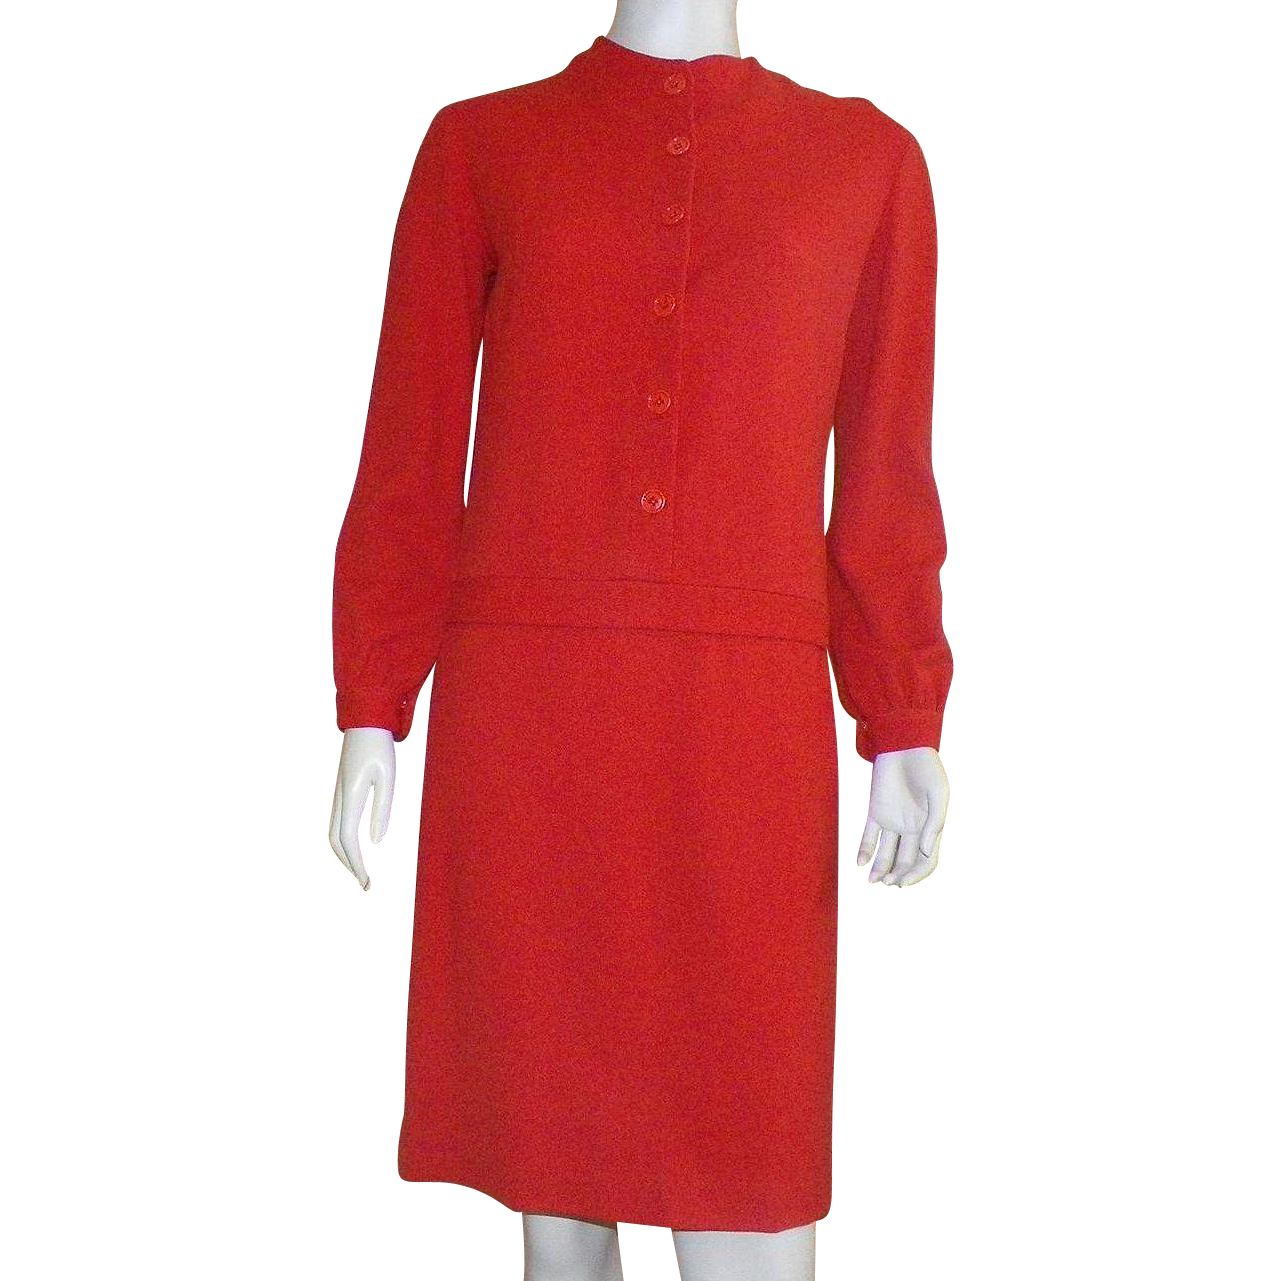 Vintage 1960's Junior Sophisticates Red Wool Drop Waist Long Sleeve Dress